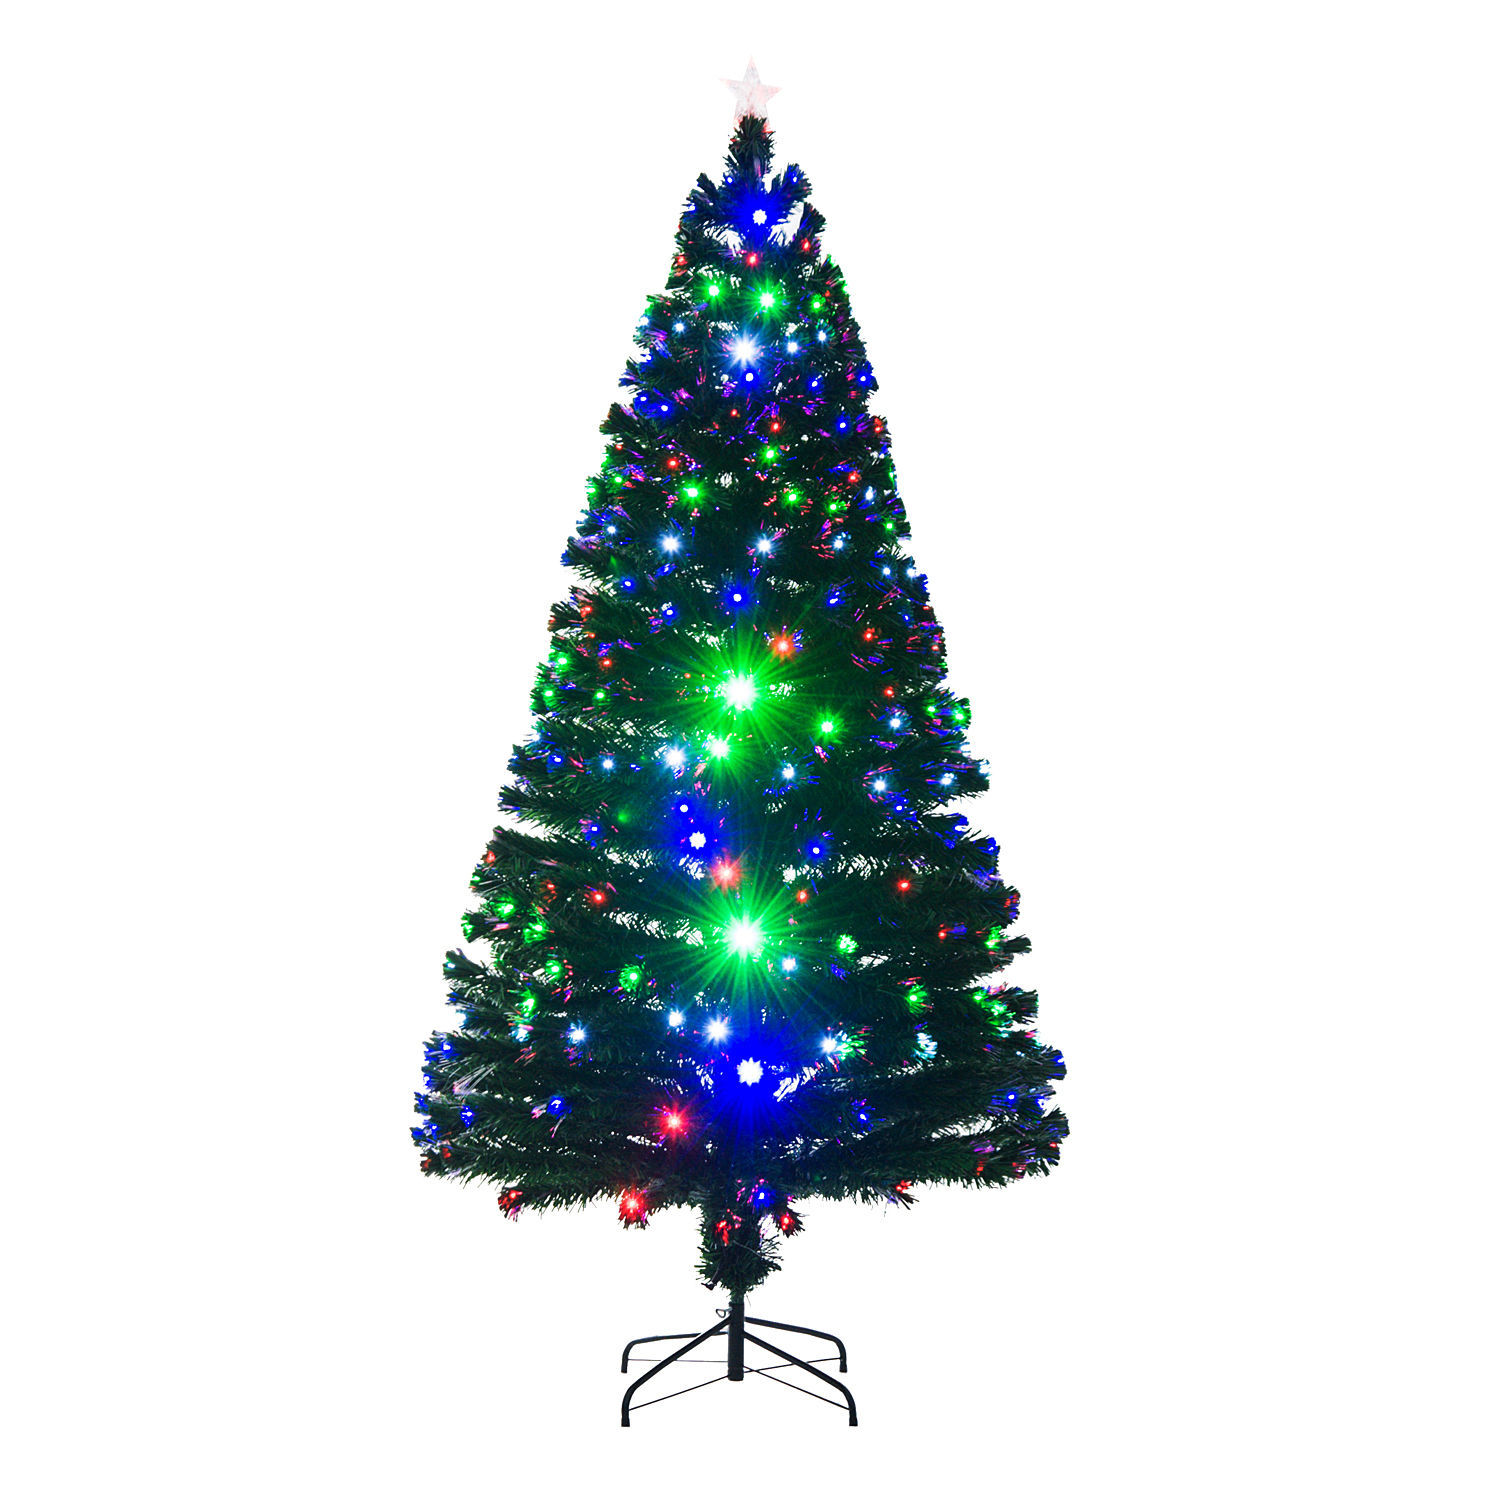 Picture of 7' Christmas Tree with Lights